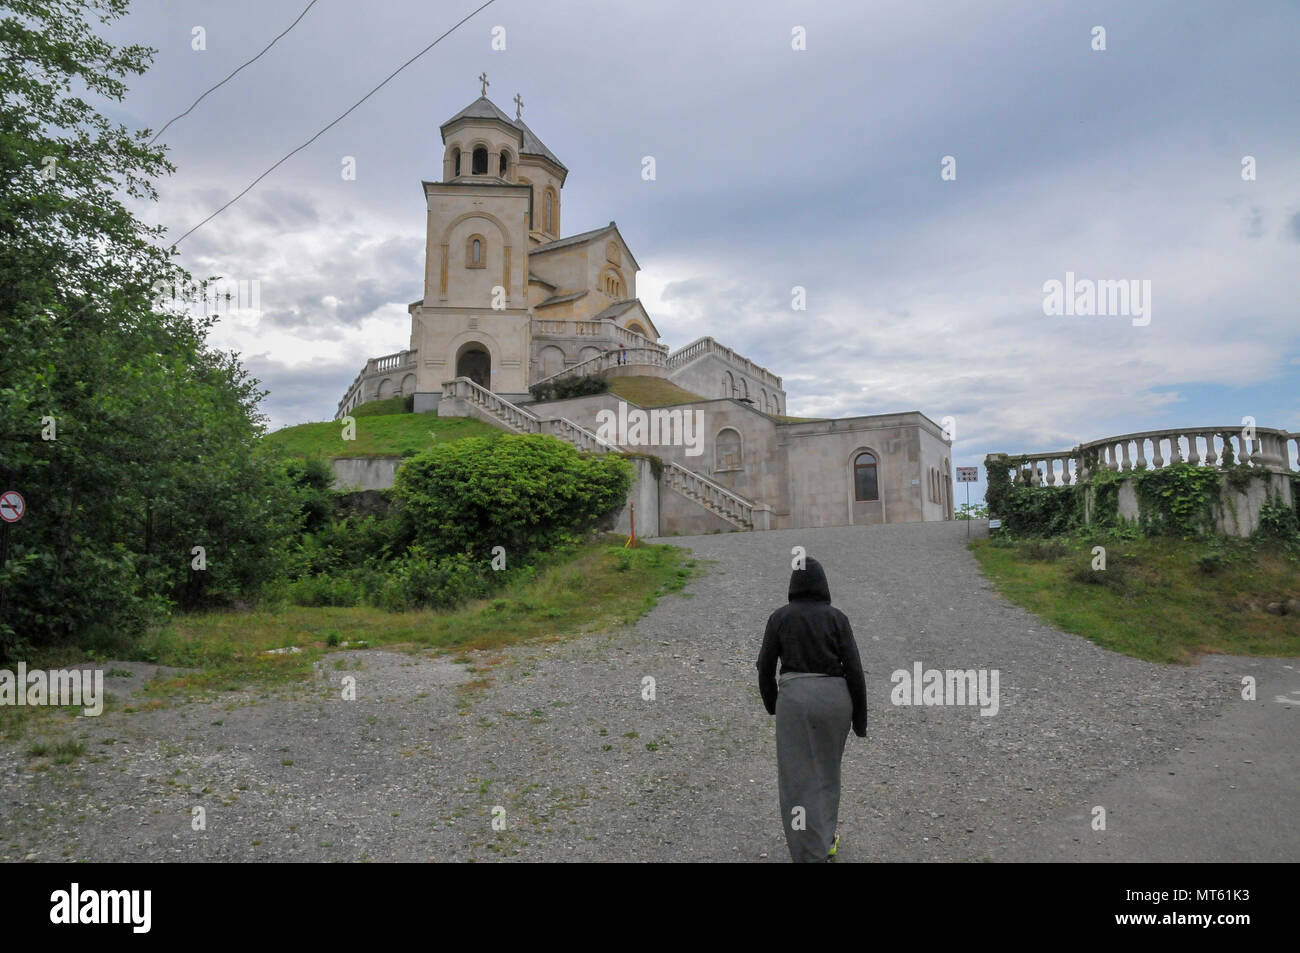 Dress code and restrictions at The Holy Trinity Monastery In Adjara, Georgia overlooking the city of Batumi - Stock Image